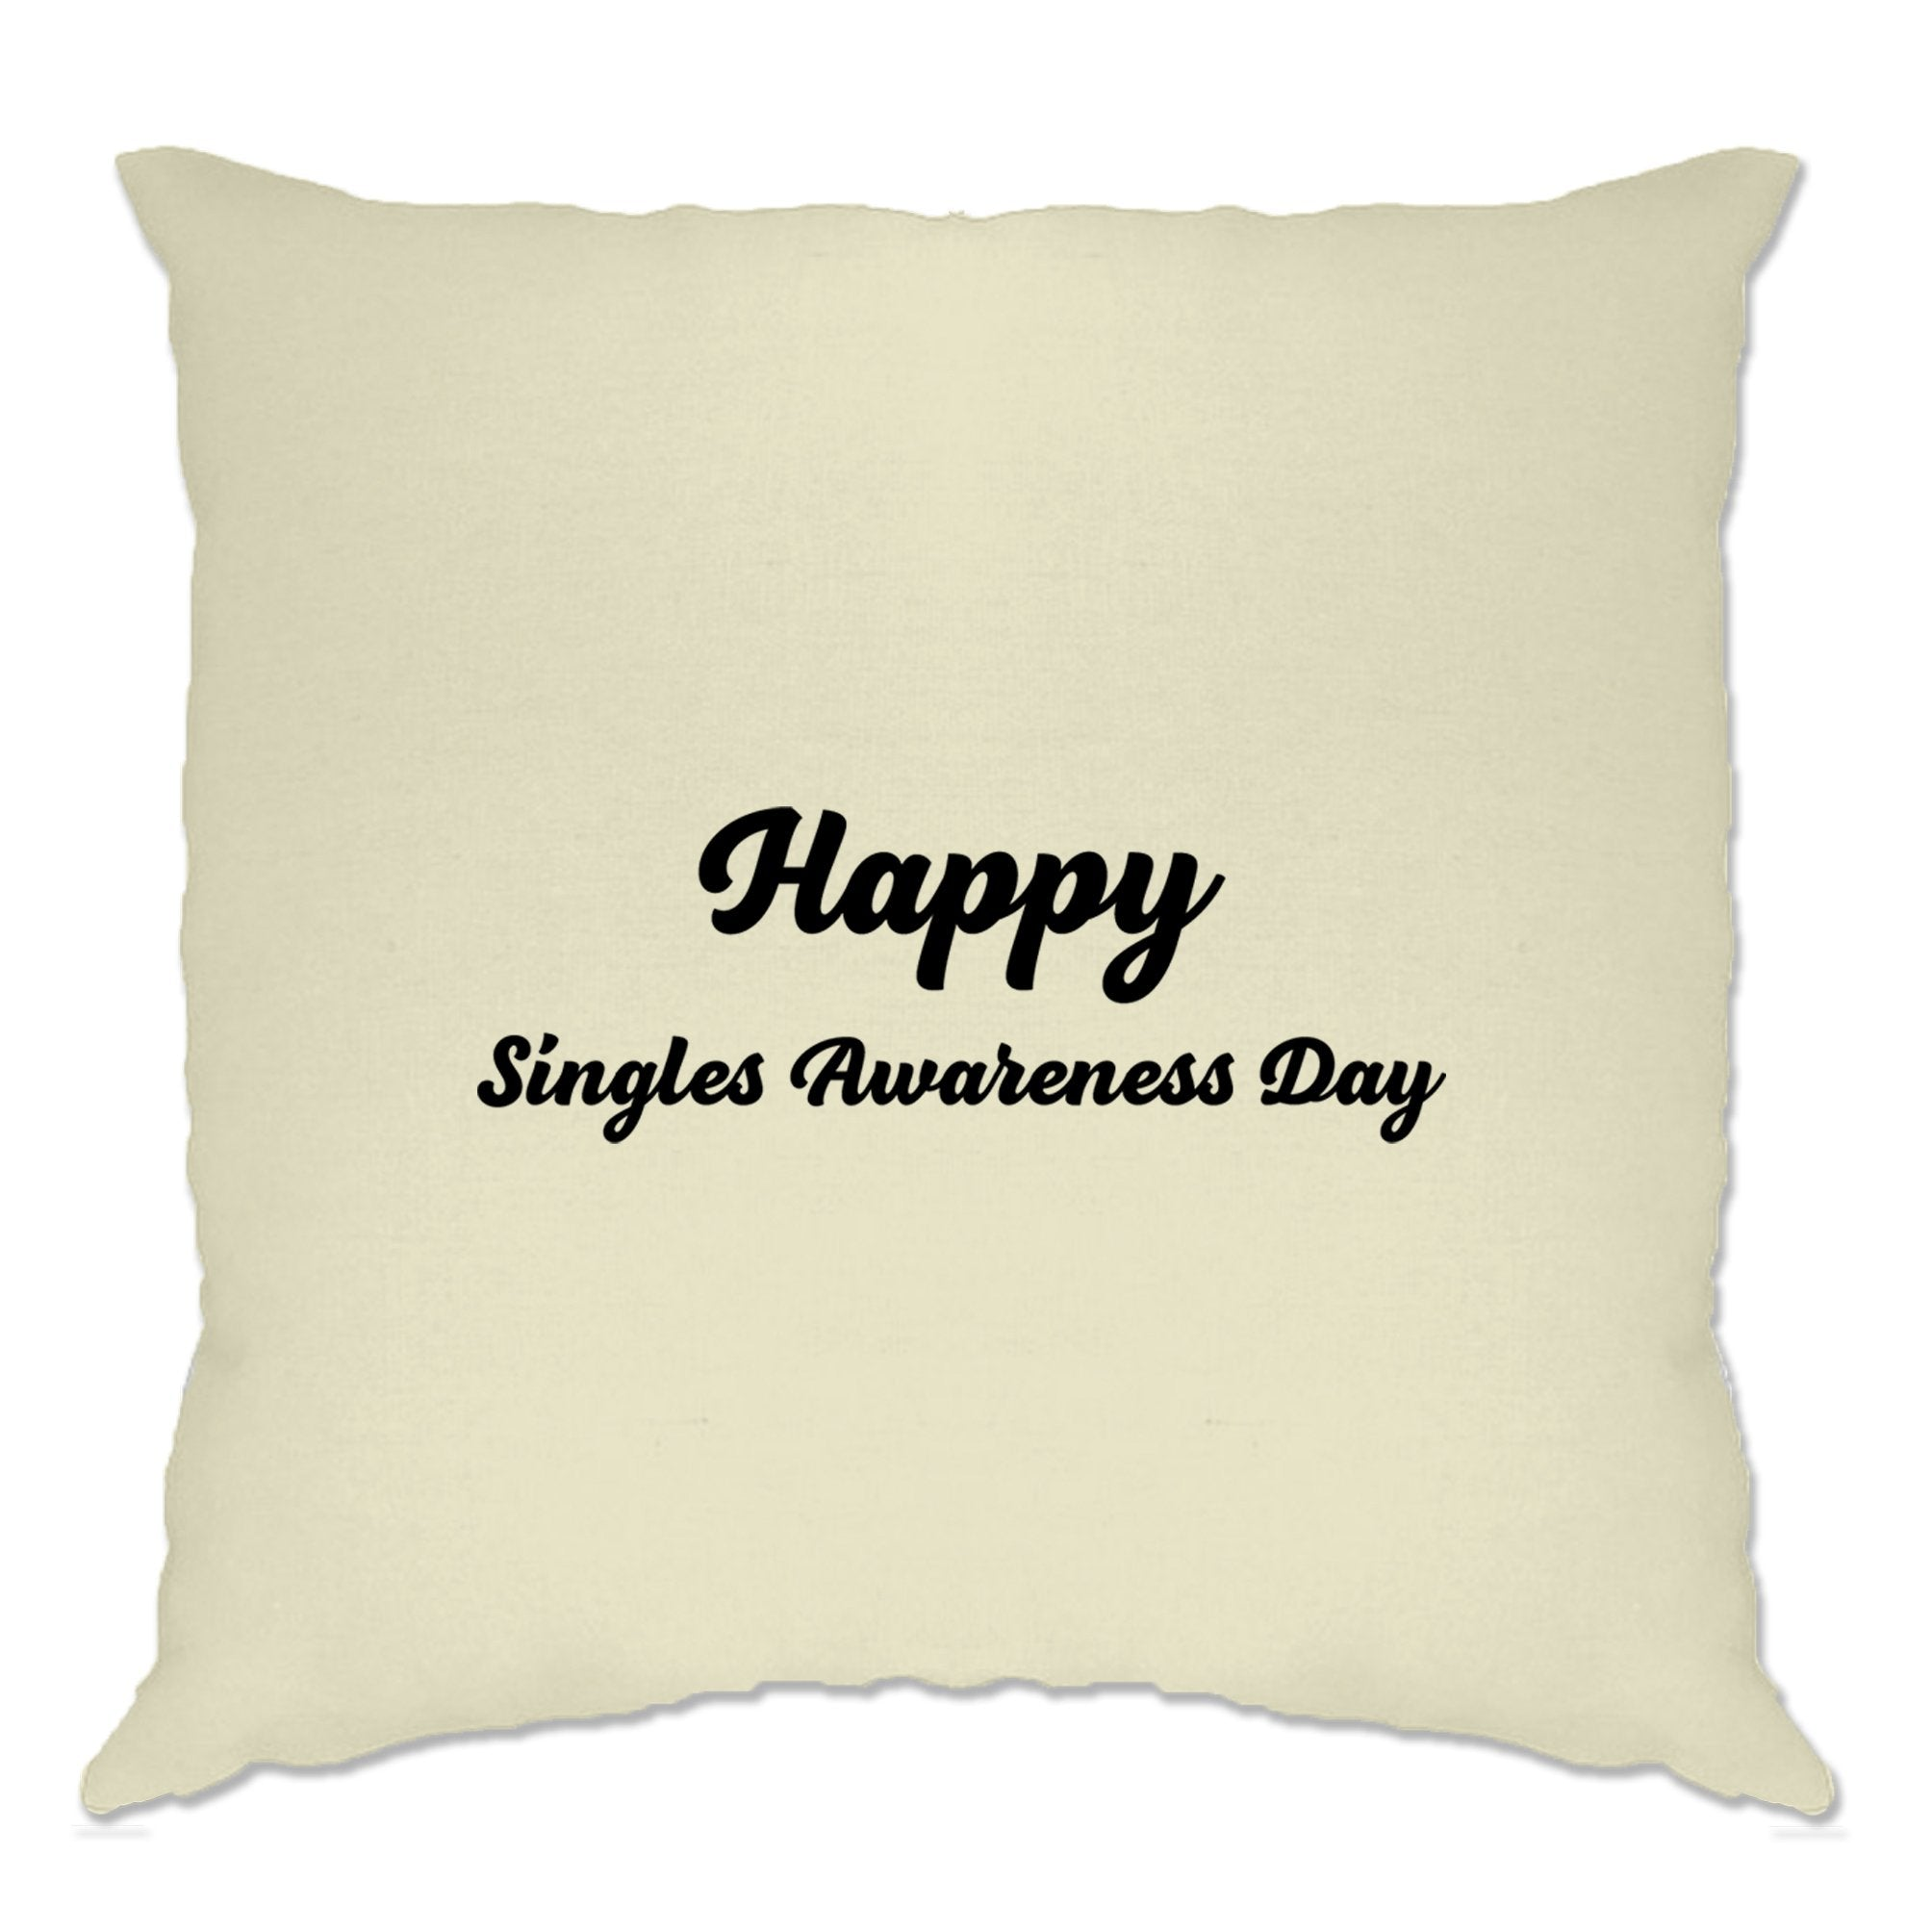 Joke Valentine's Day Cushion Cover Singles Awareness Day